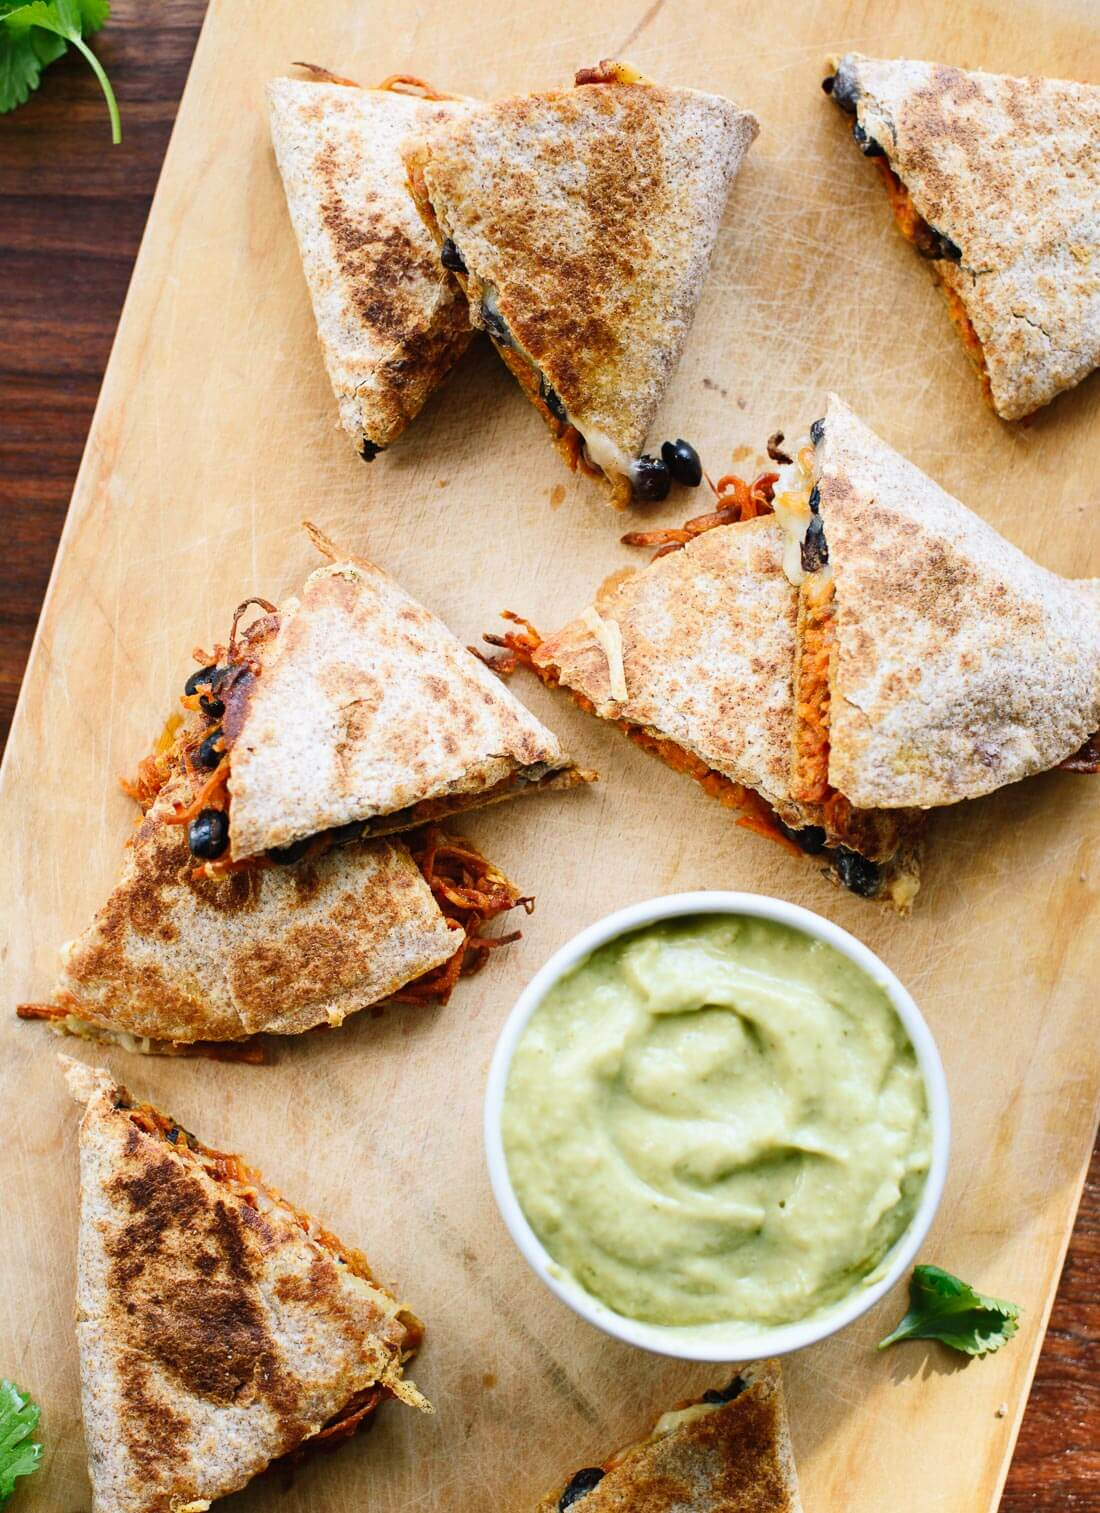 Amazing sweet potato black bean quesadillas with creamy avocado salsa verde (perfect for busy weeknights!) - cookieandkate.com